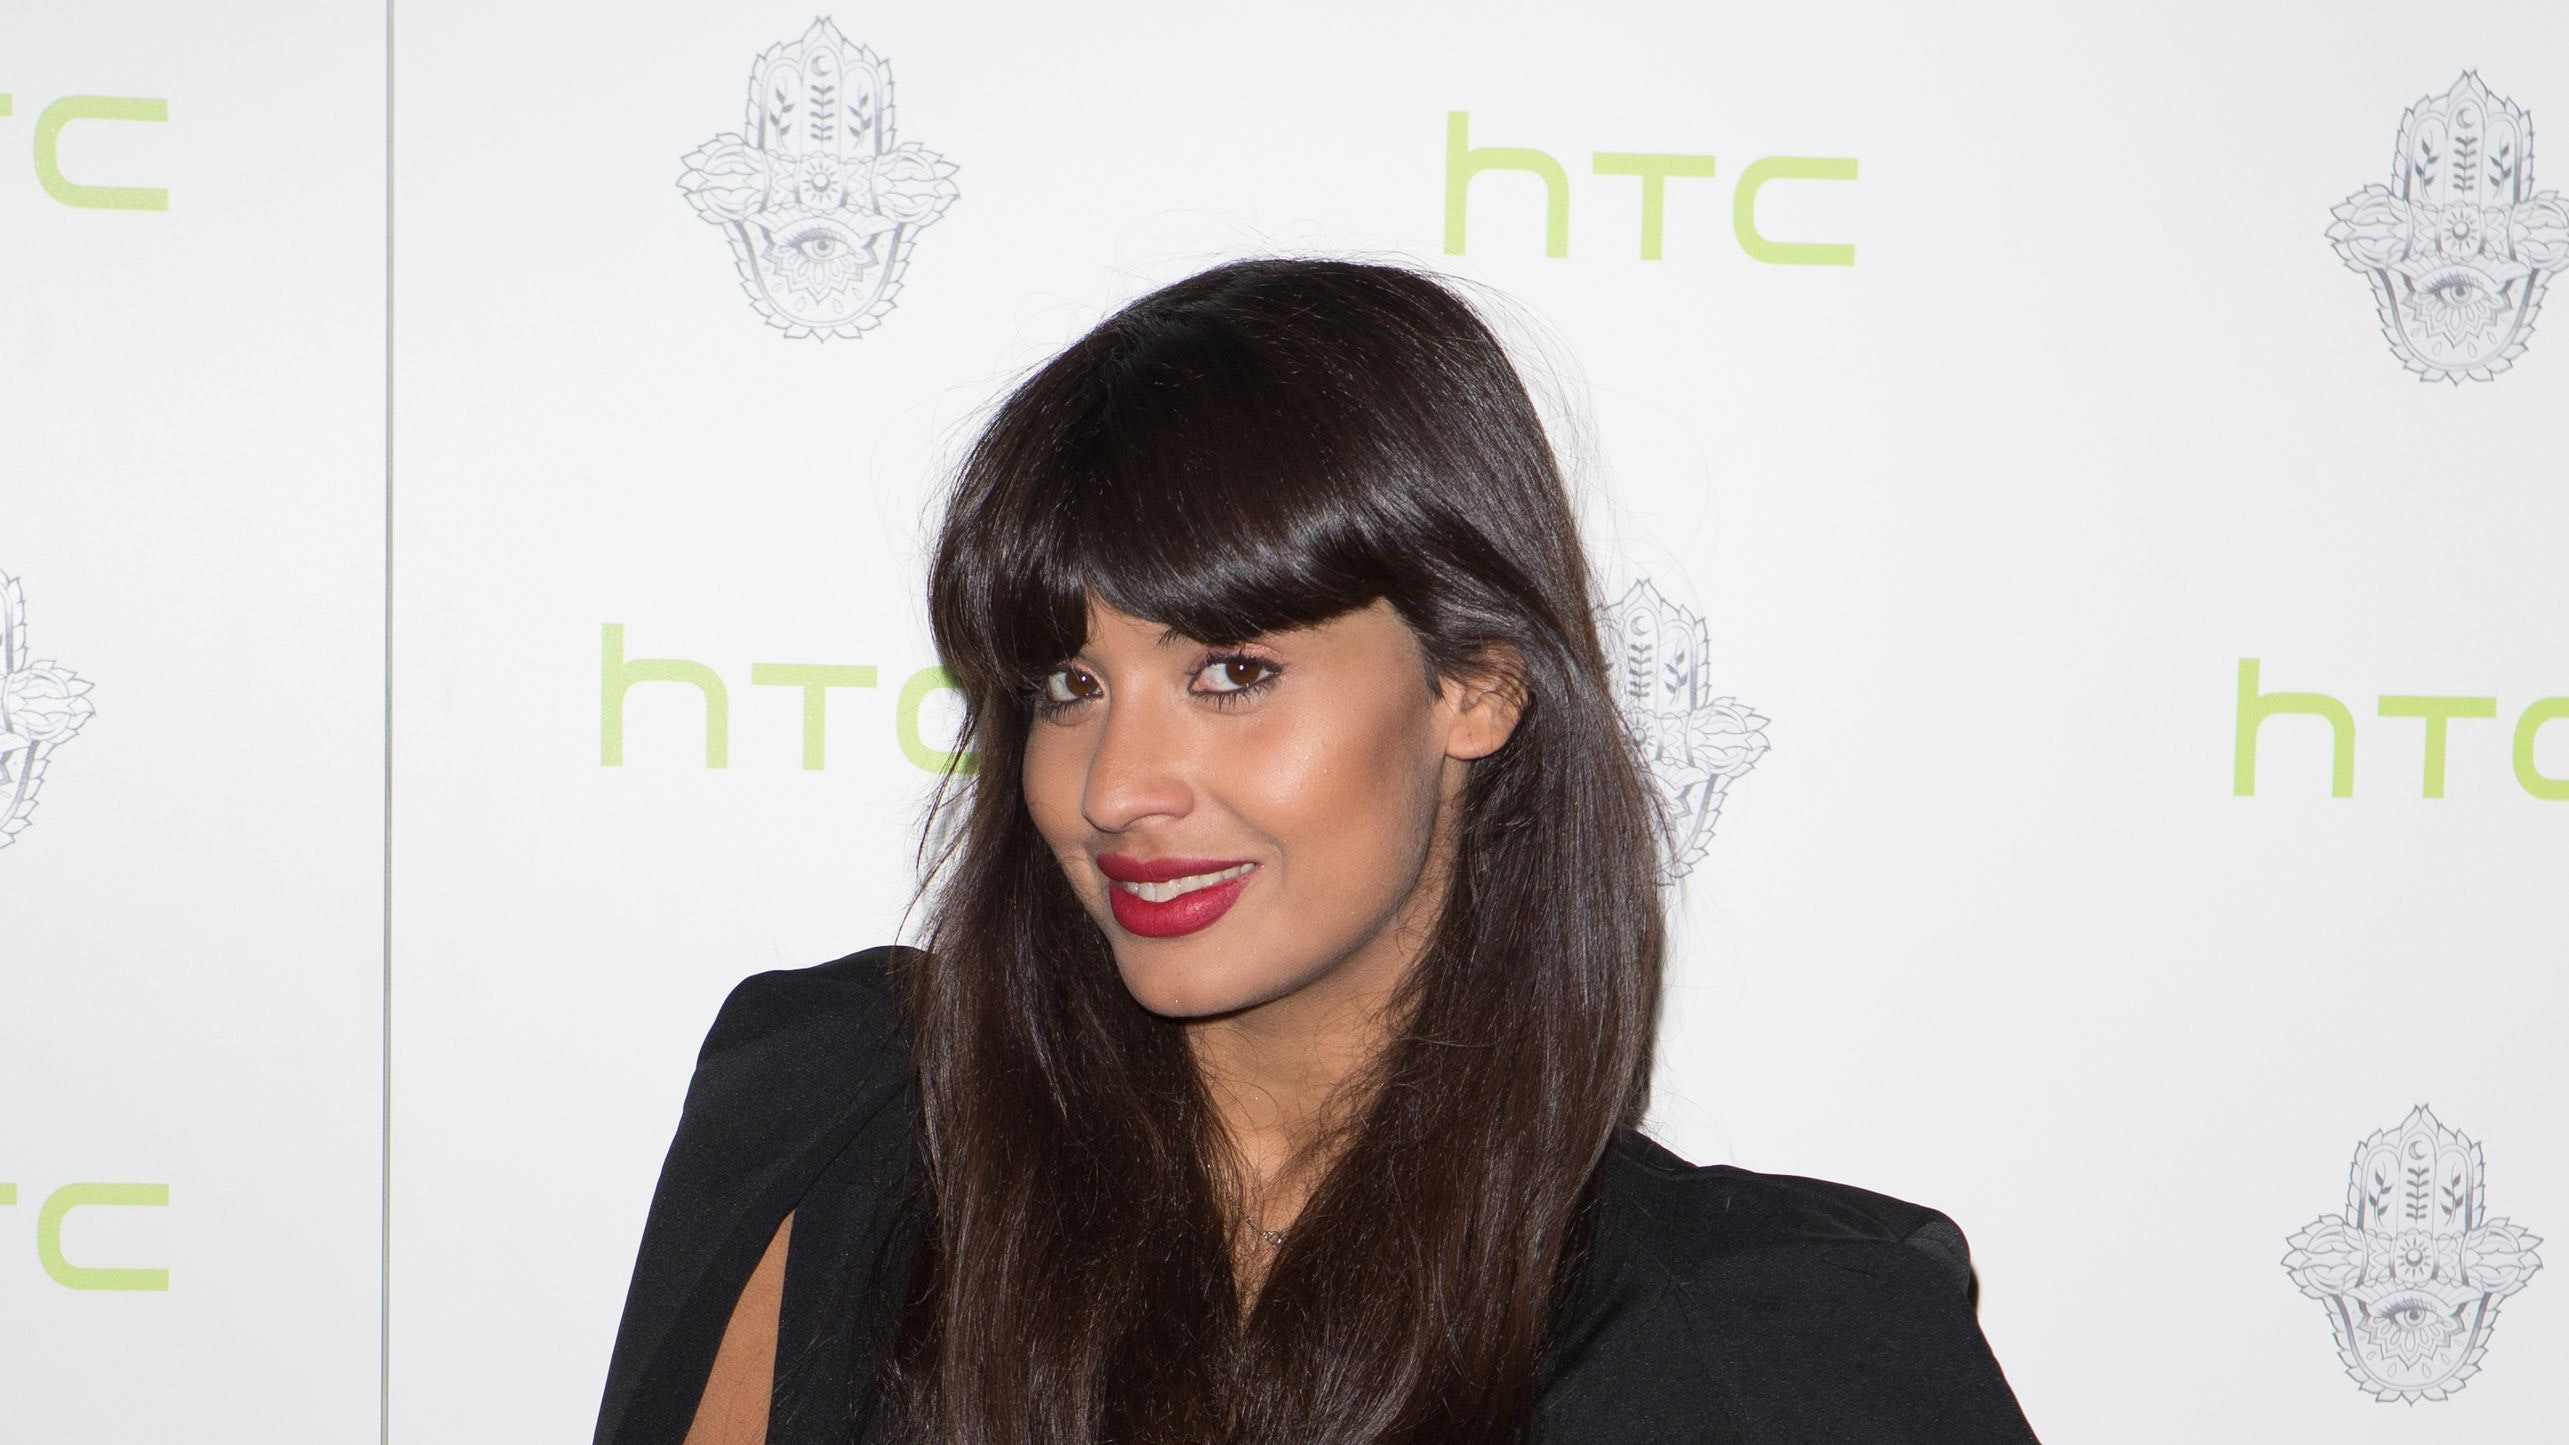 Jameela Jamil says abortion was 'best decision I ever made' as she slams US law